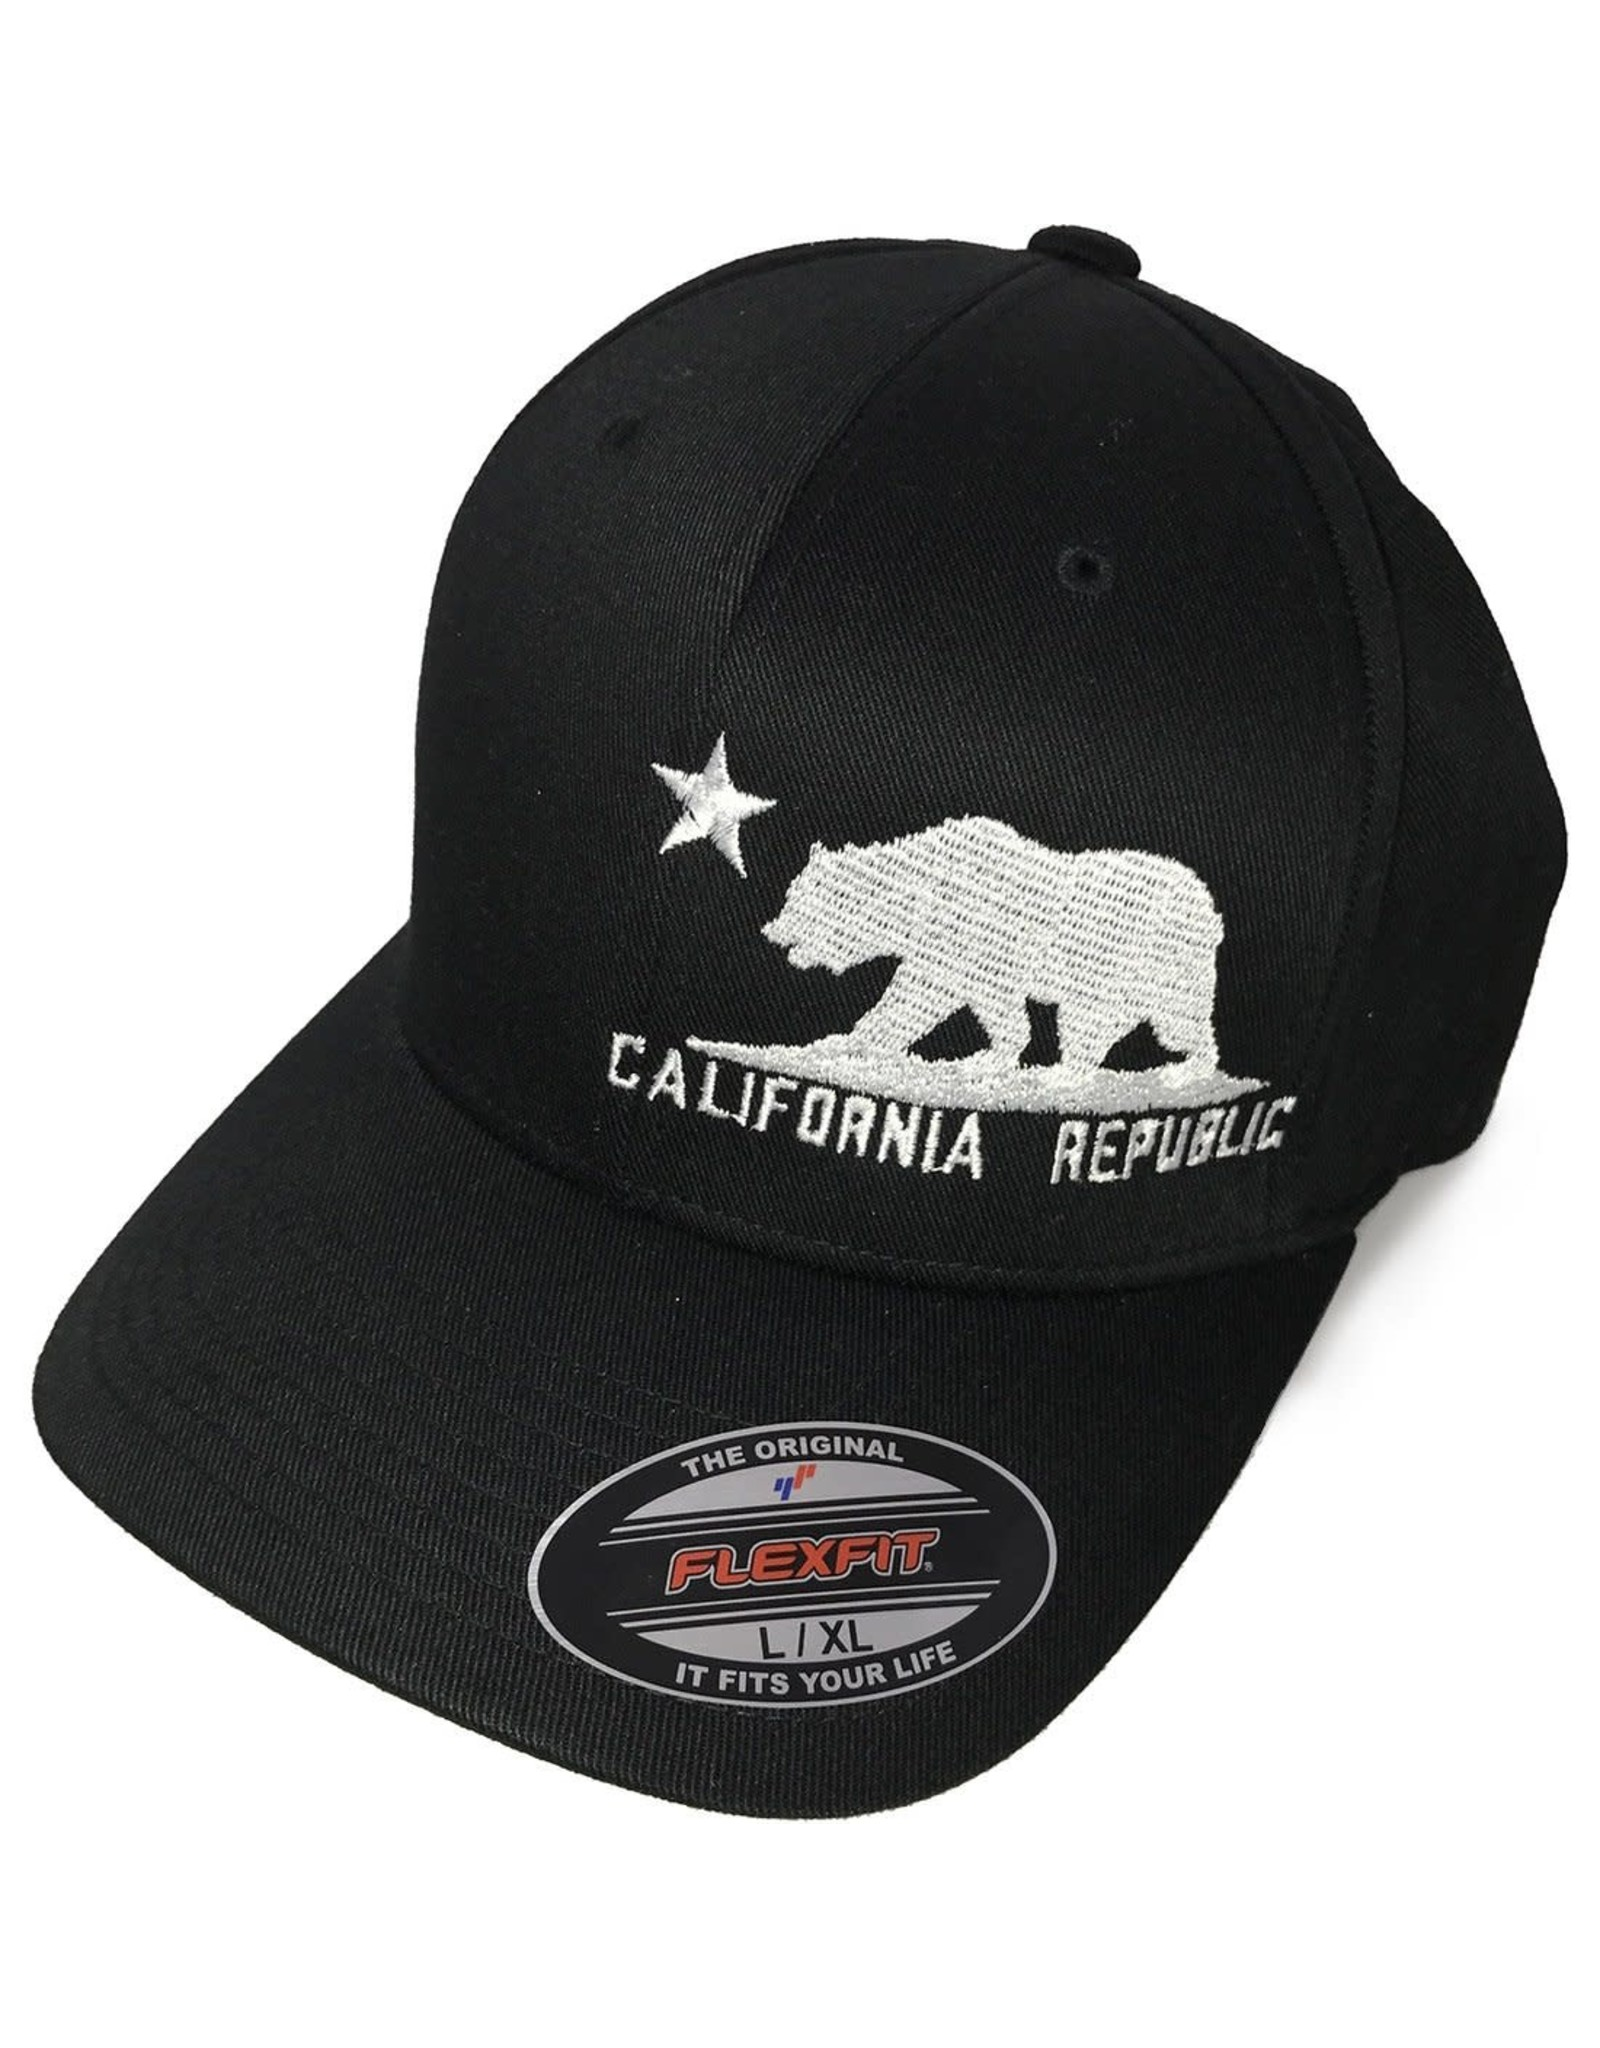 Cap-Black Ca. Rep. L/XL